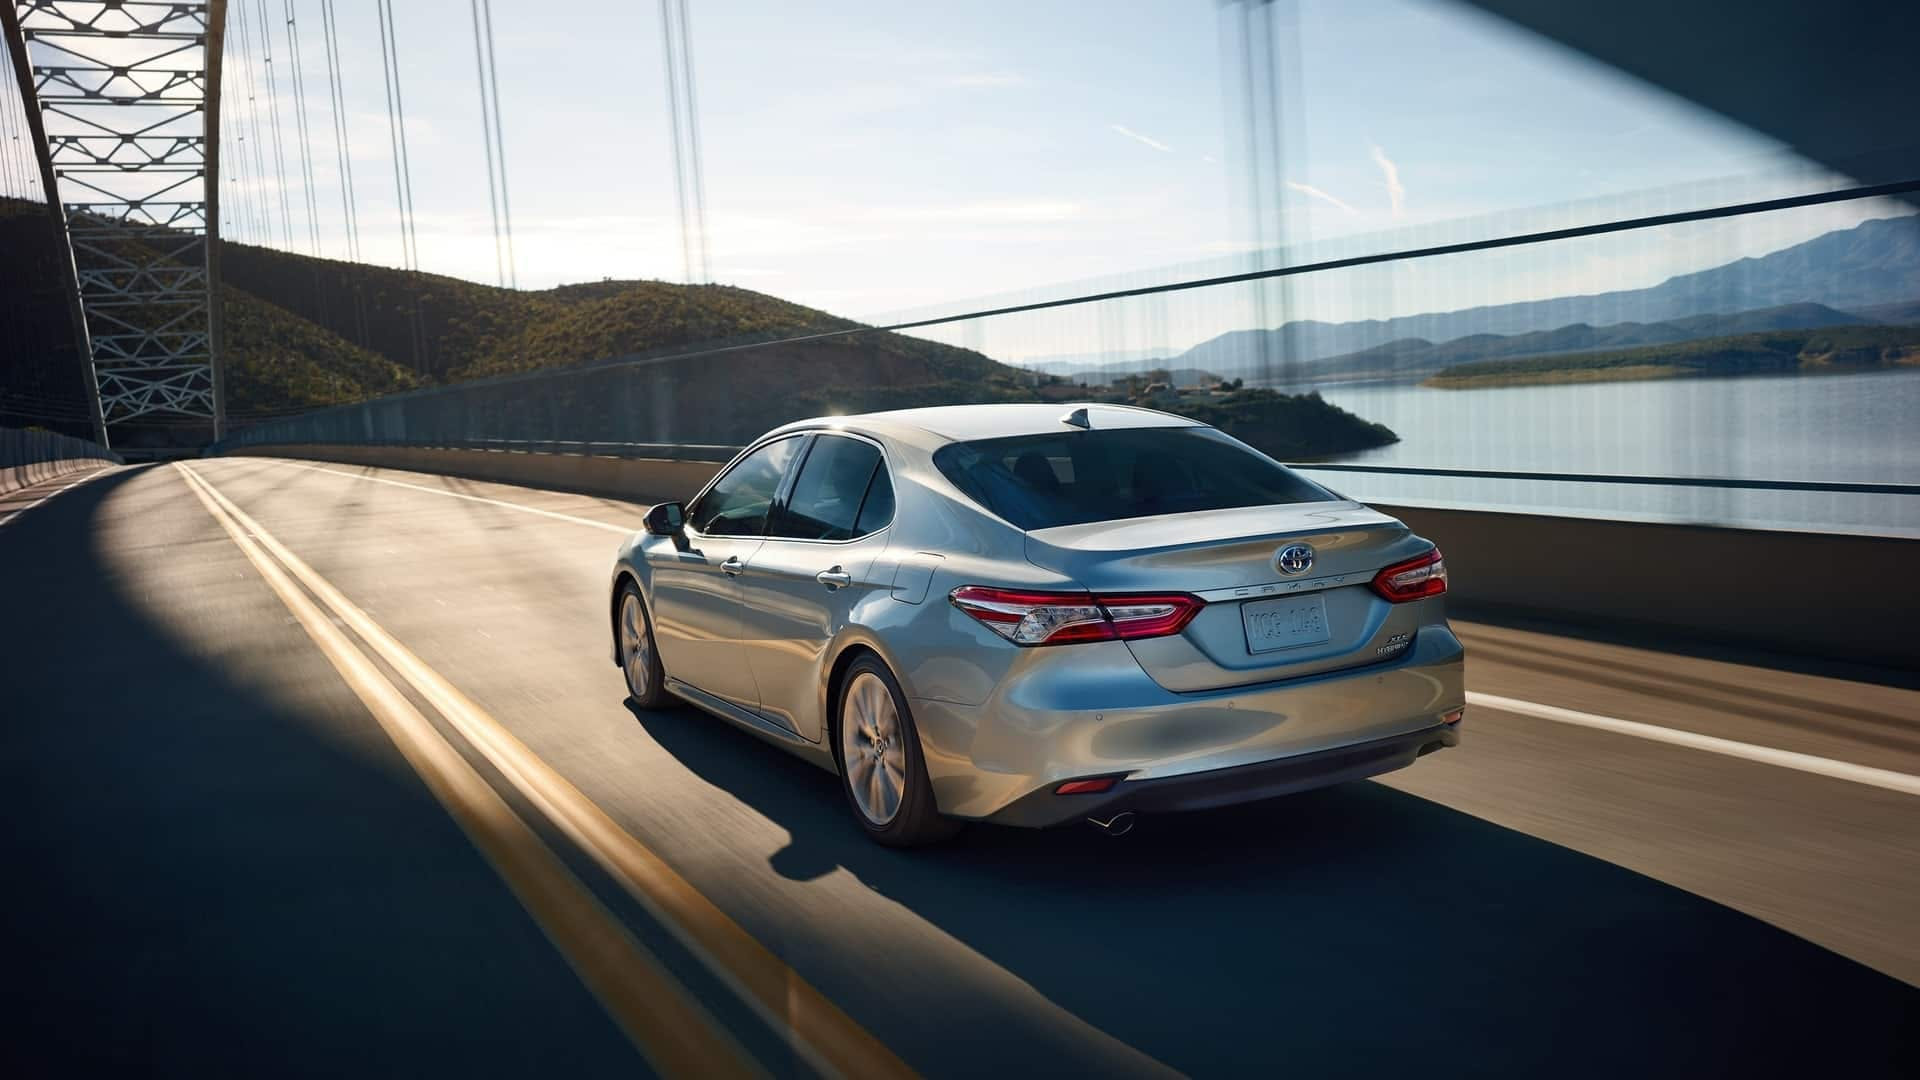 Get to know the 2020 Toyota Camry near Greenville PA